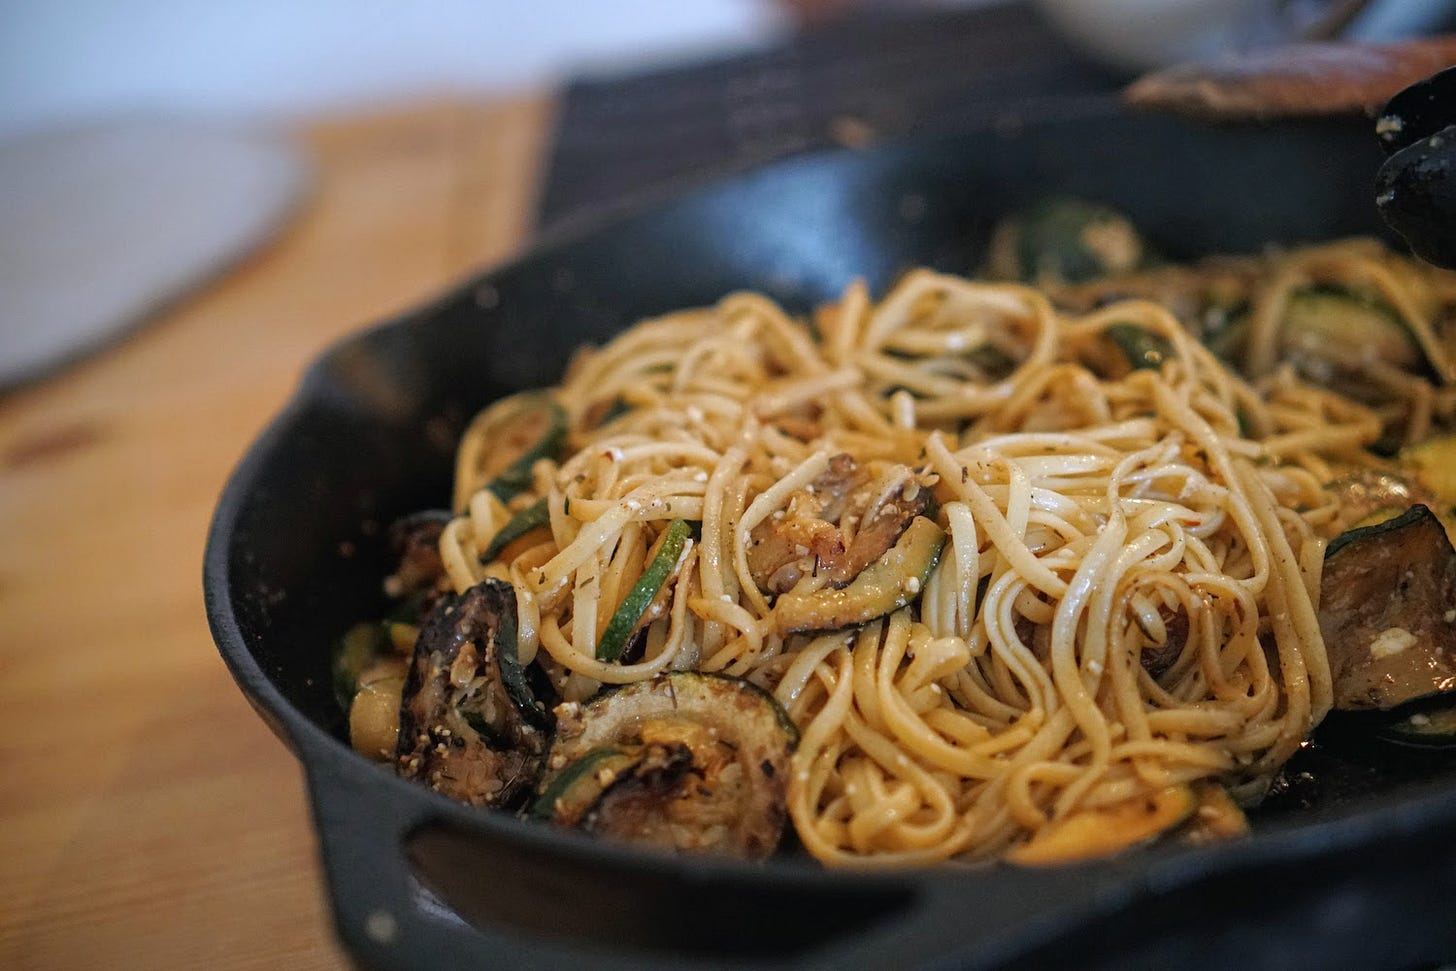 Linguine in a cast iron pan